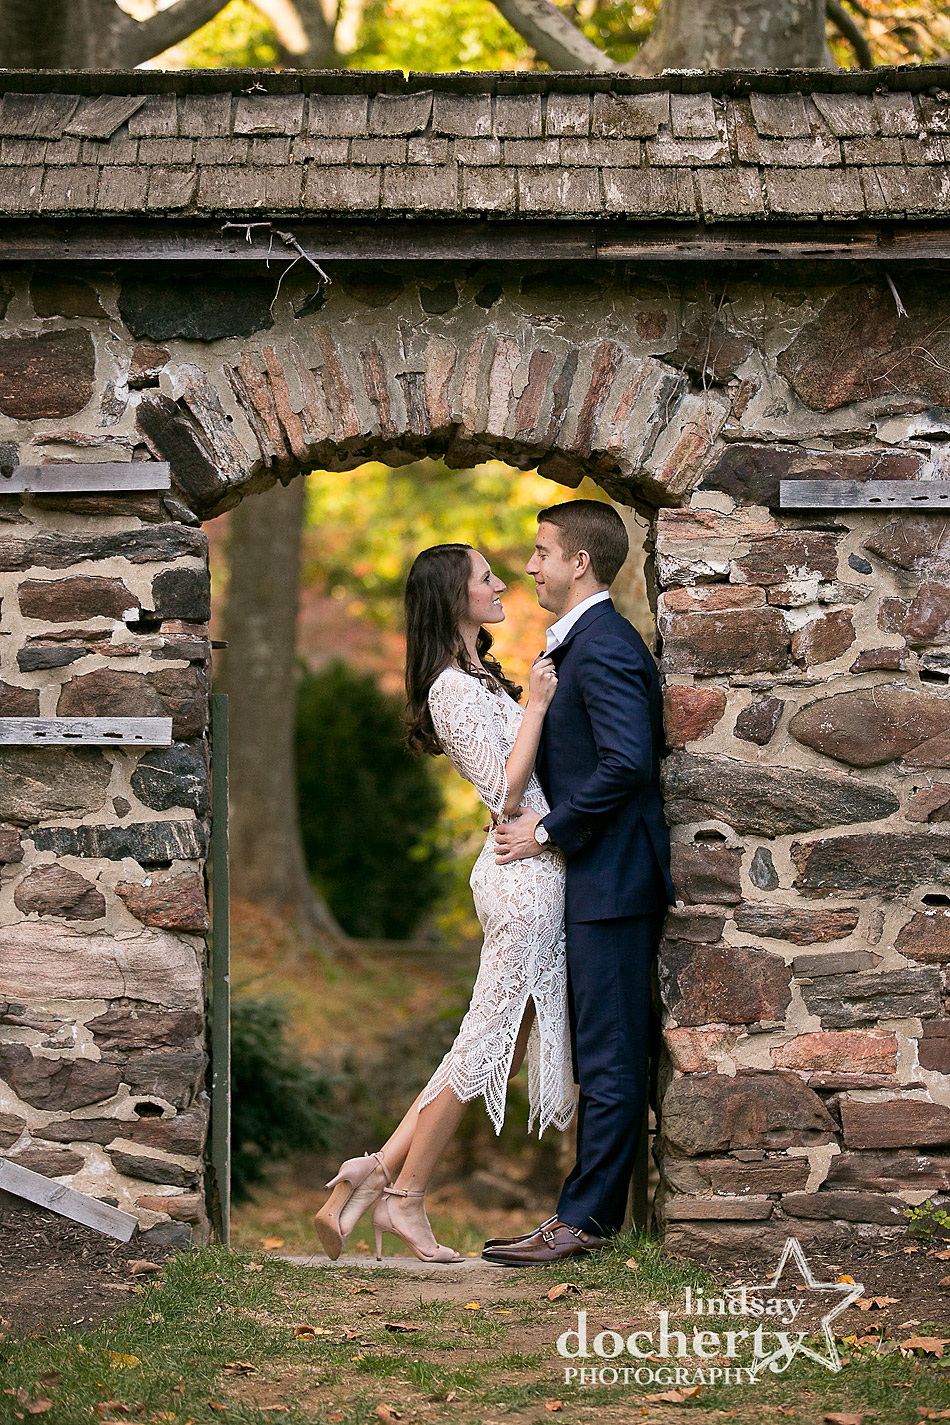 engagement picture in stone doorway at Ridley Creek State Park